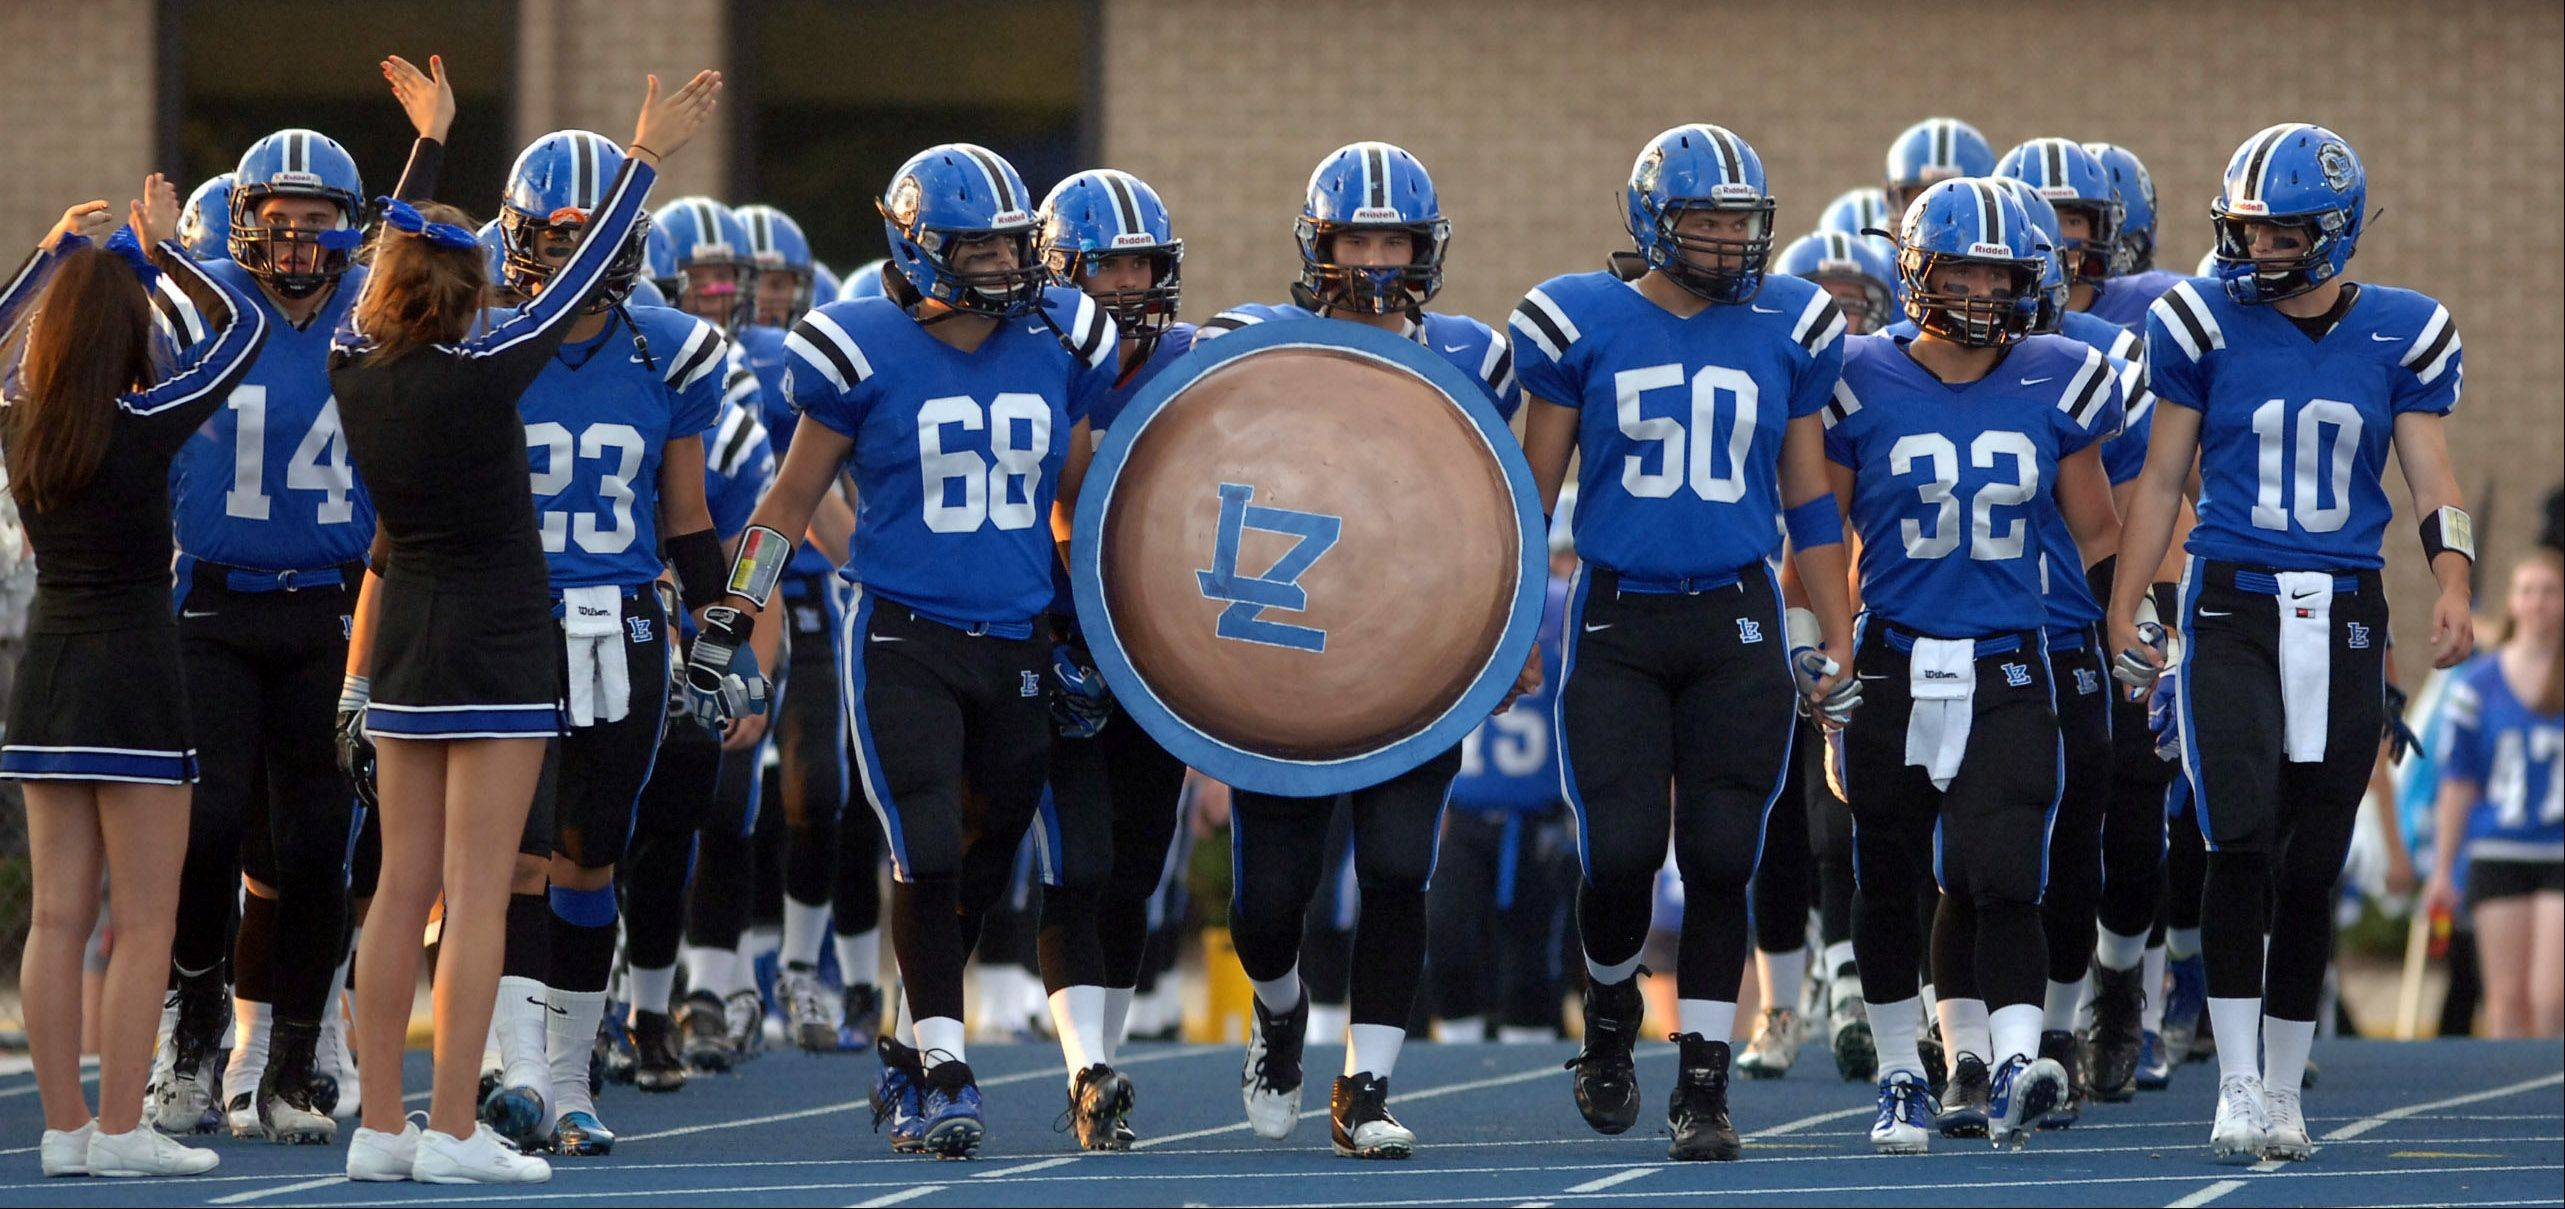 Lake Zurich takes the field to face the Fremd Vikings on Friday night in Lake Zurich.